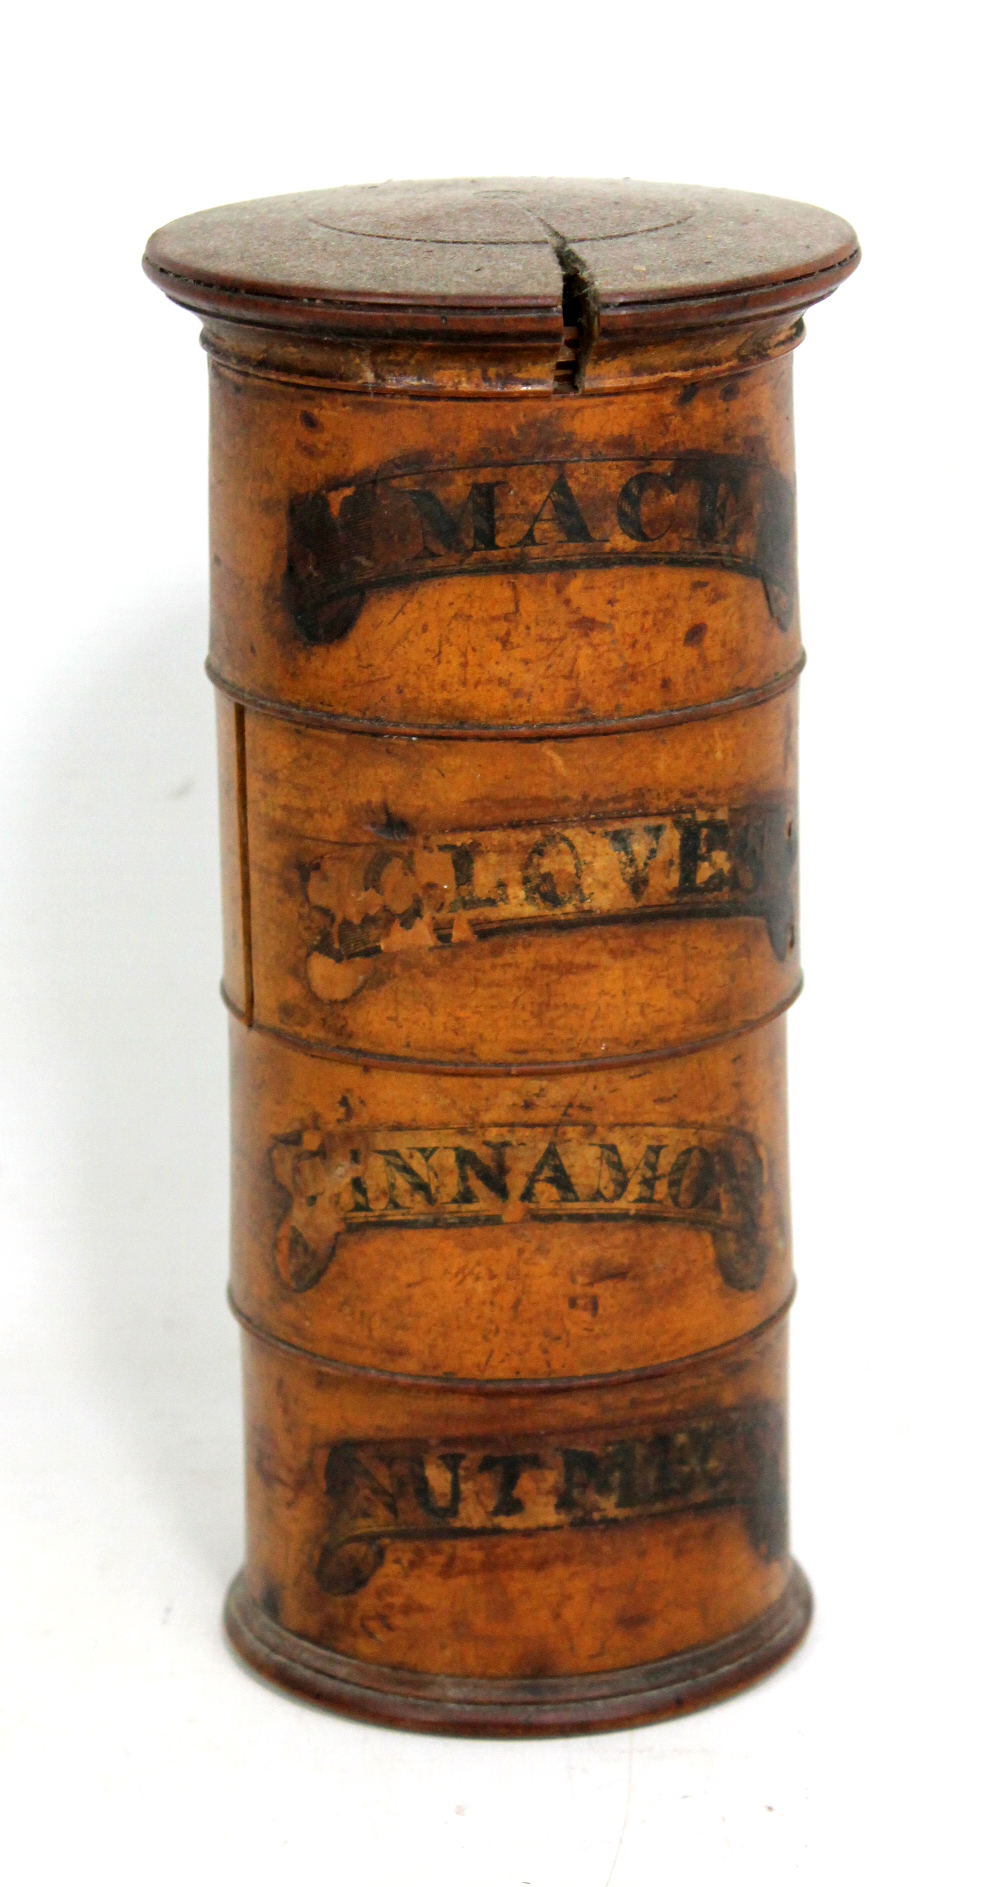 Lot 50 - A Victorian four tier cylindrical spice tower; 'Mace', 'Cloves', 'Cinnamon', and 'Nutmegs', height